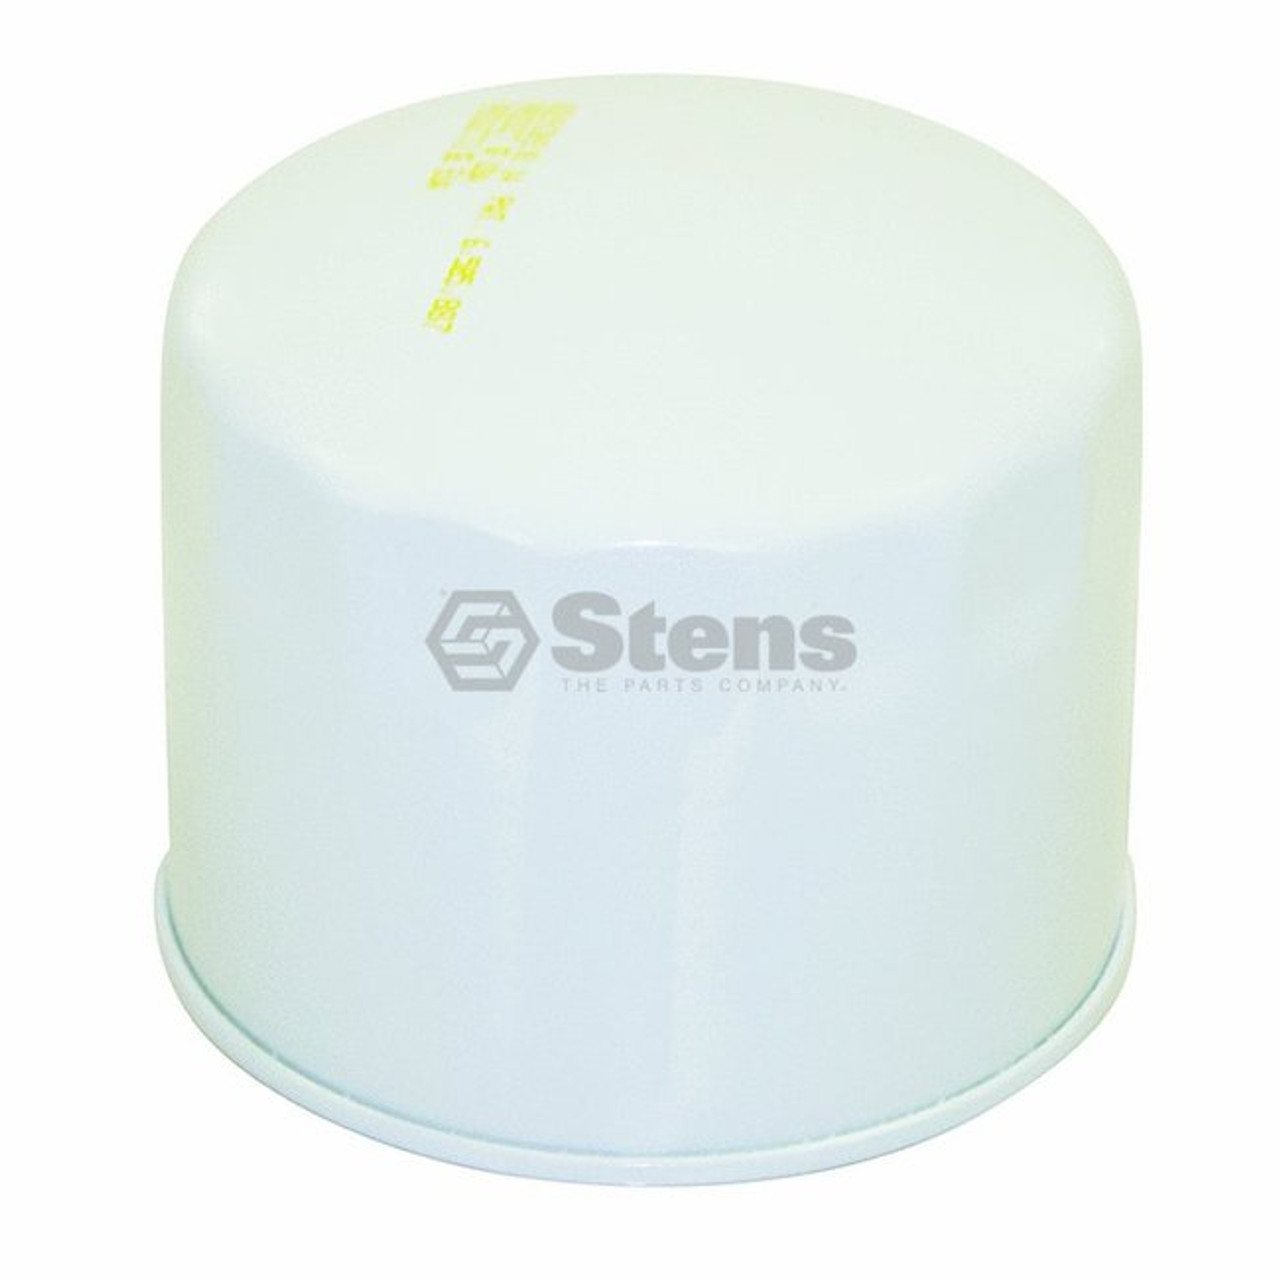 Oil Filter for Yanmar 12915035150 Made In USA